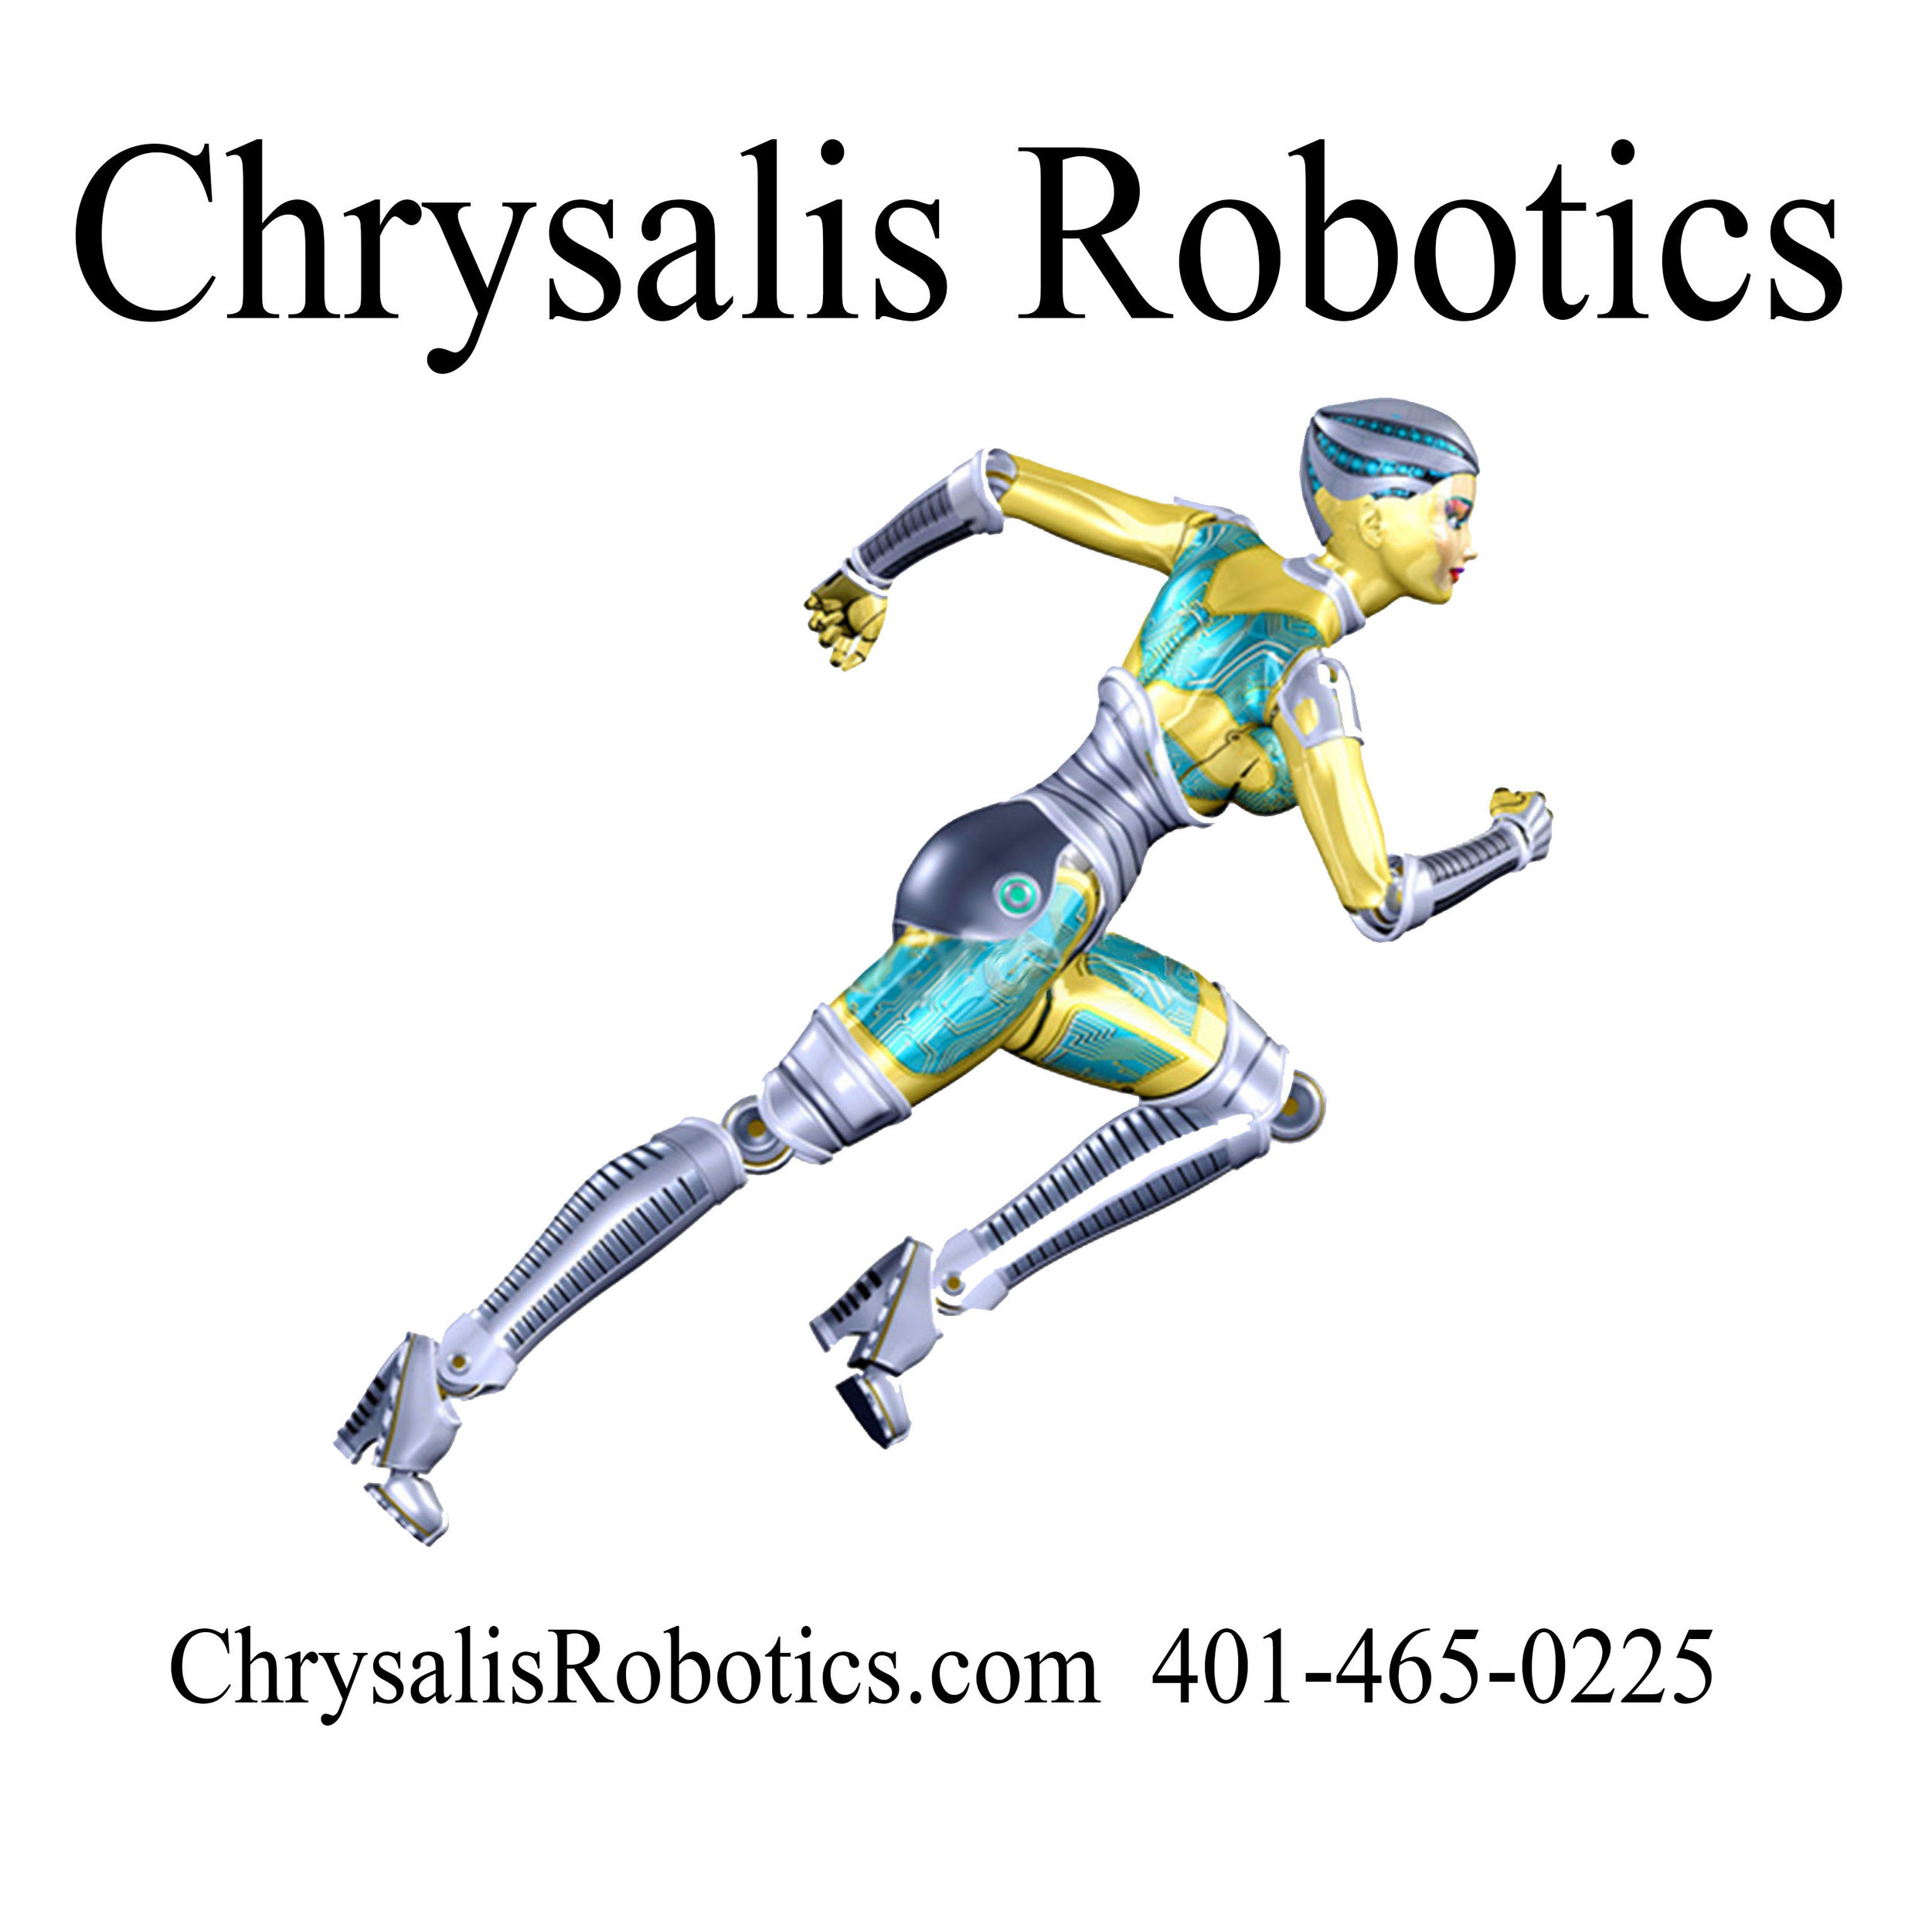 CHRYSALIS ROBOTICS & AI for KIDS of TOMORROW